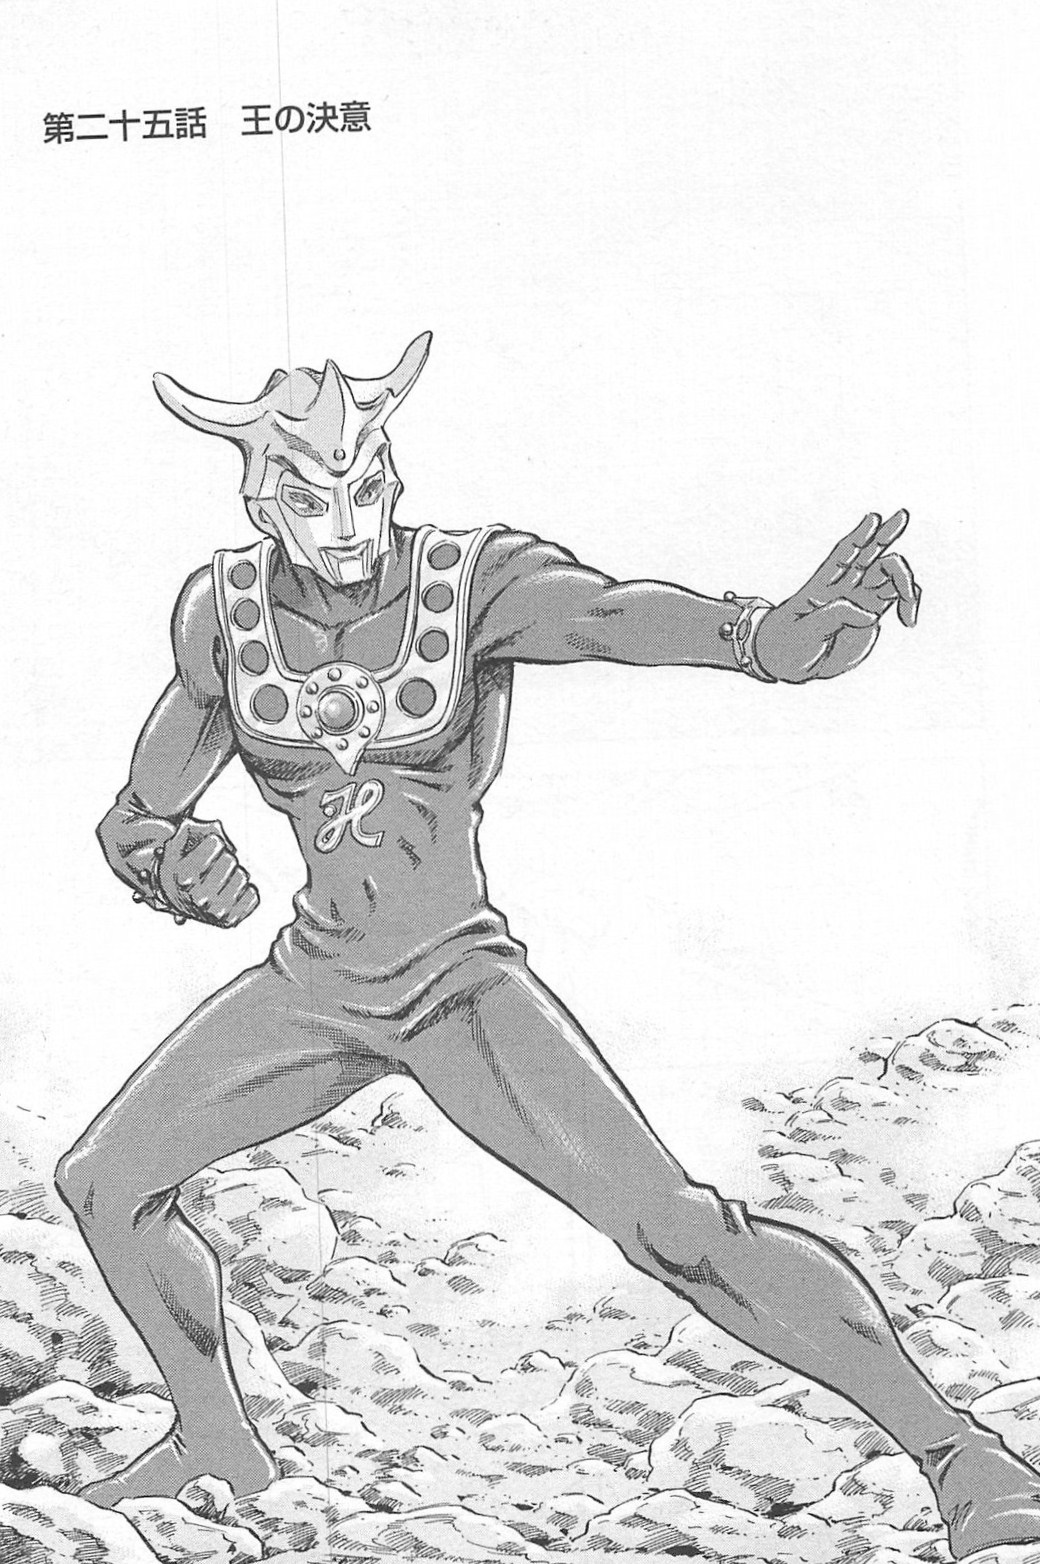 Image Leo Story0 Jpg Ultraman Wiki Fandom Powered By Wikia Coloring Pages Ultraman